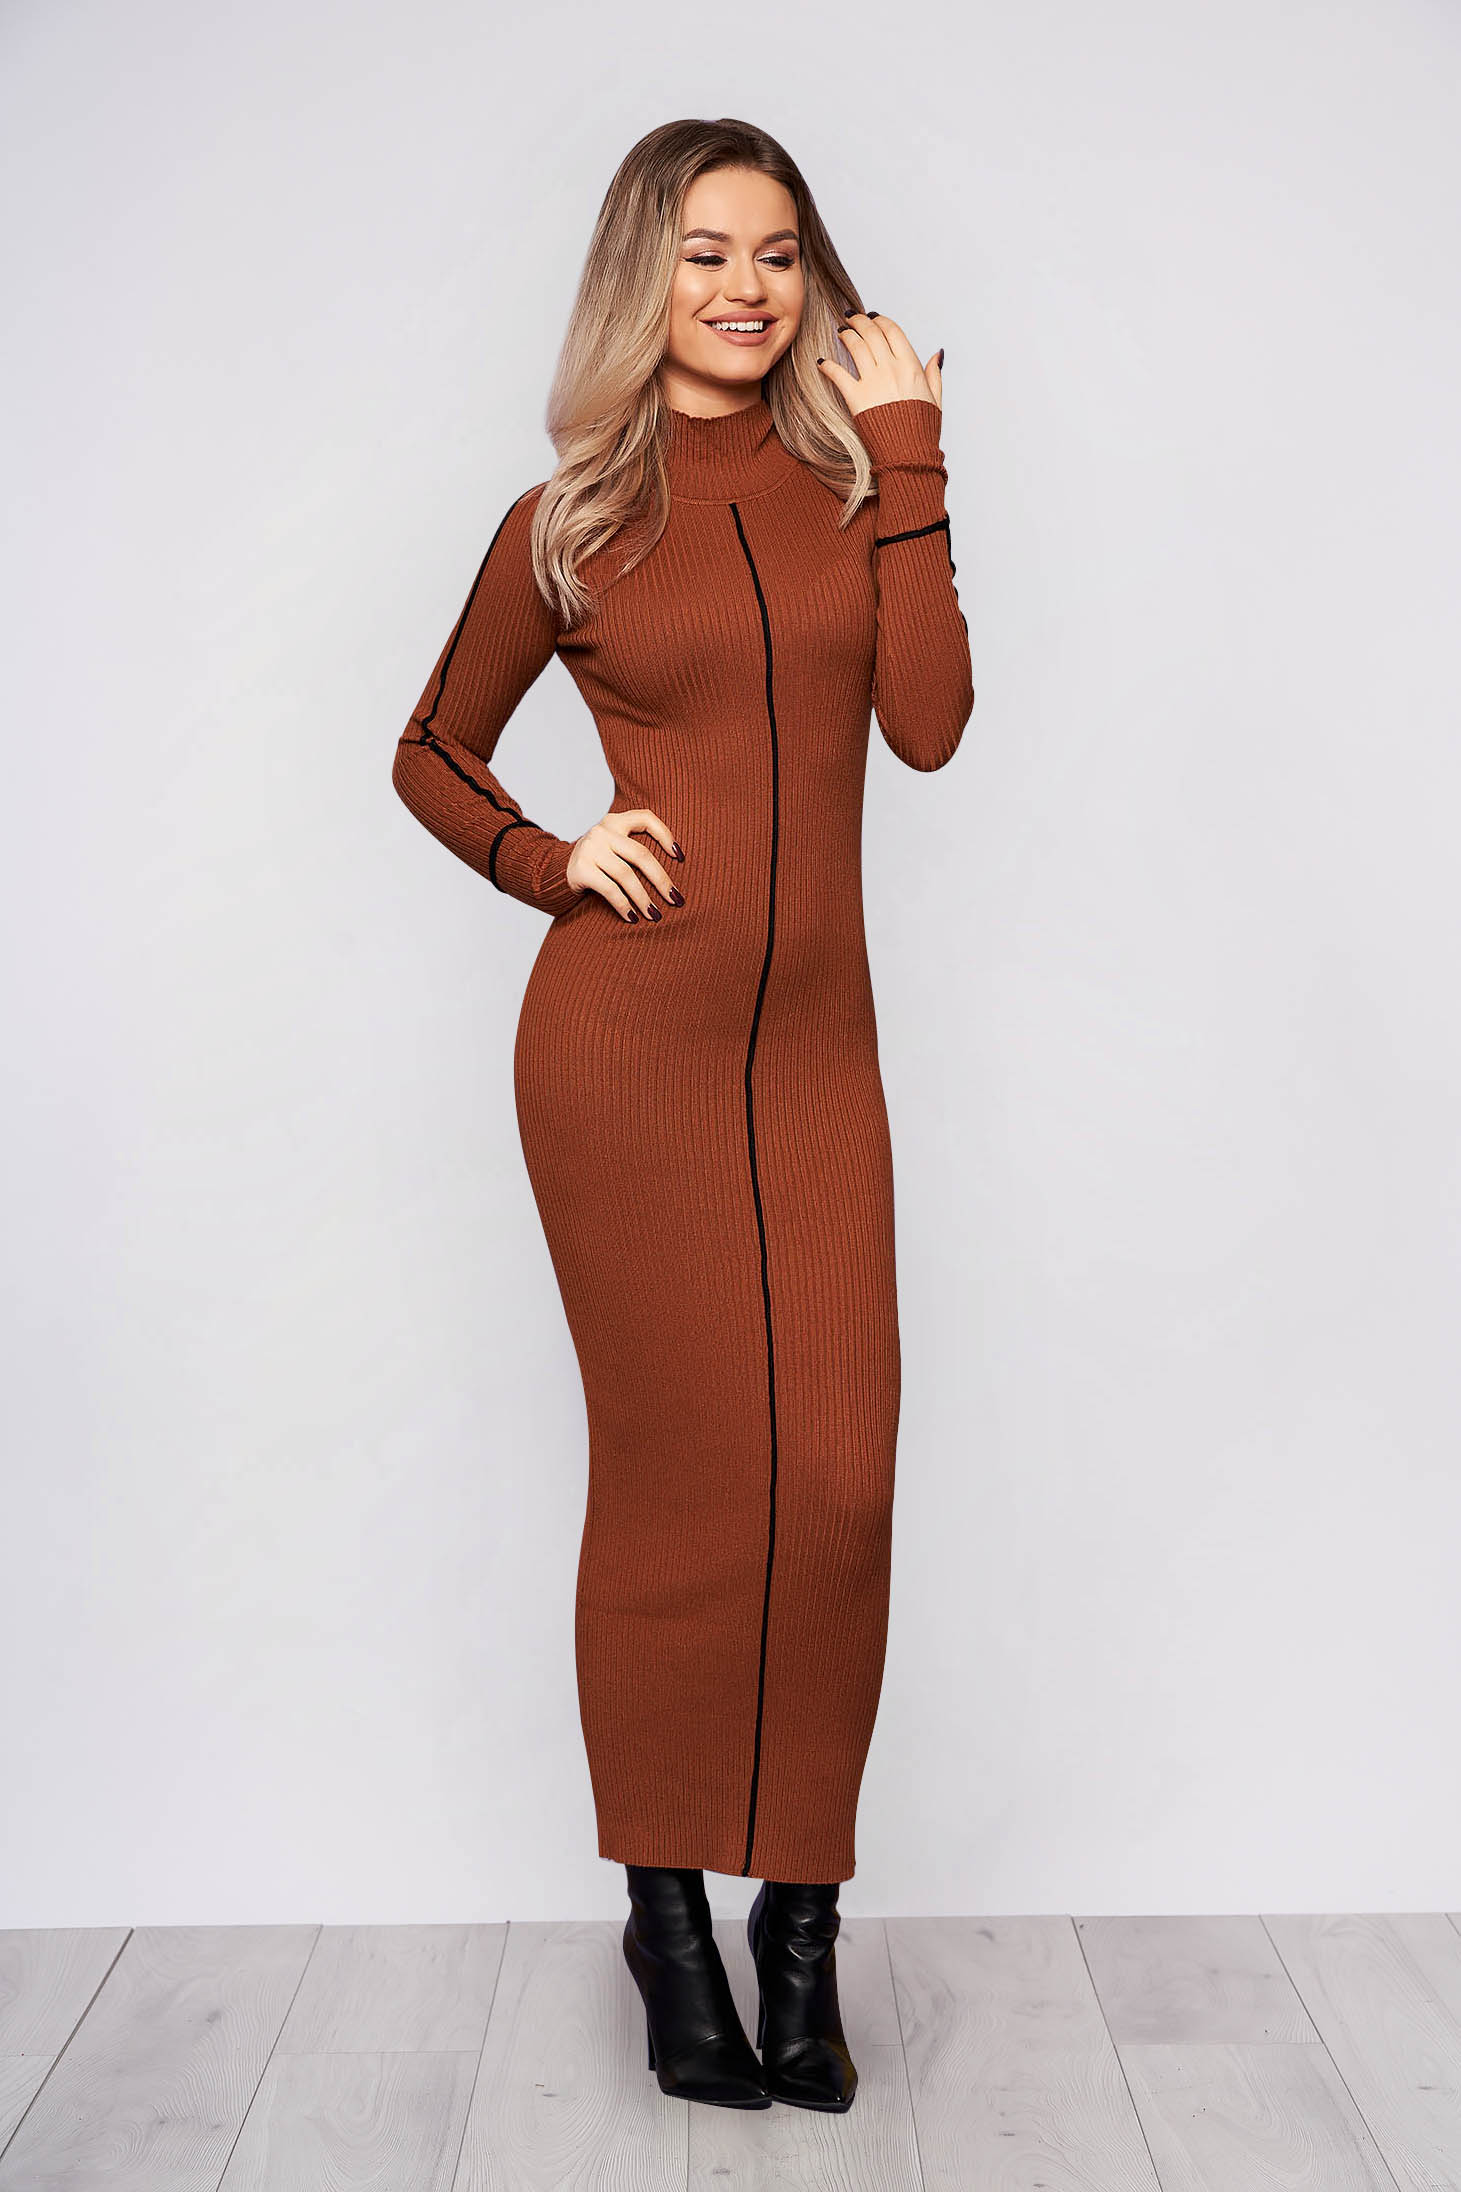 Brown dress casual daily long pencil with turtle neck knitted arched cut